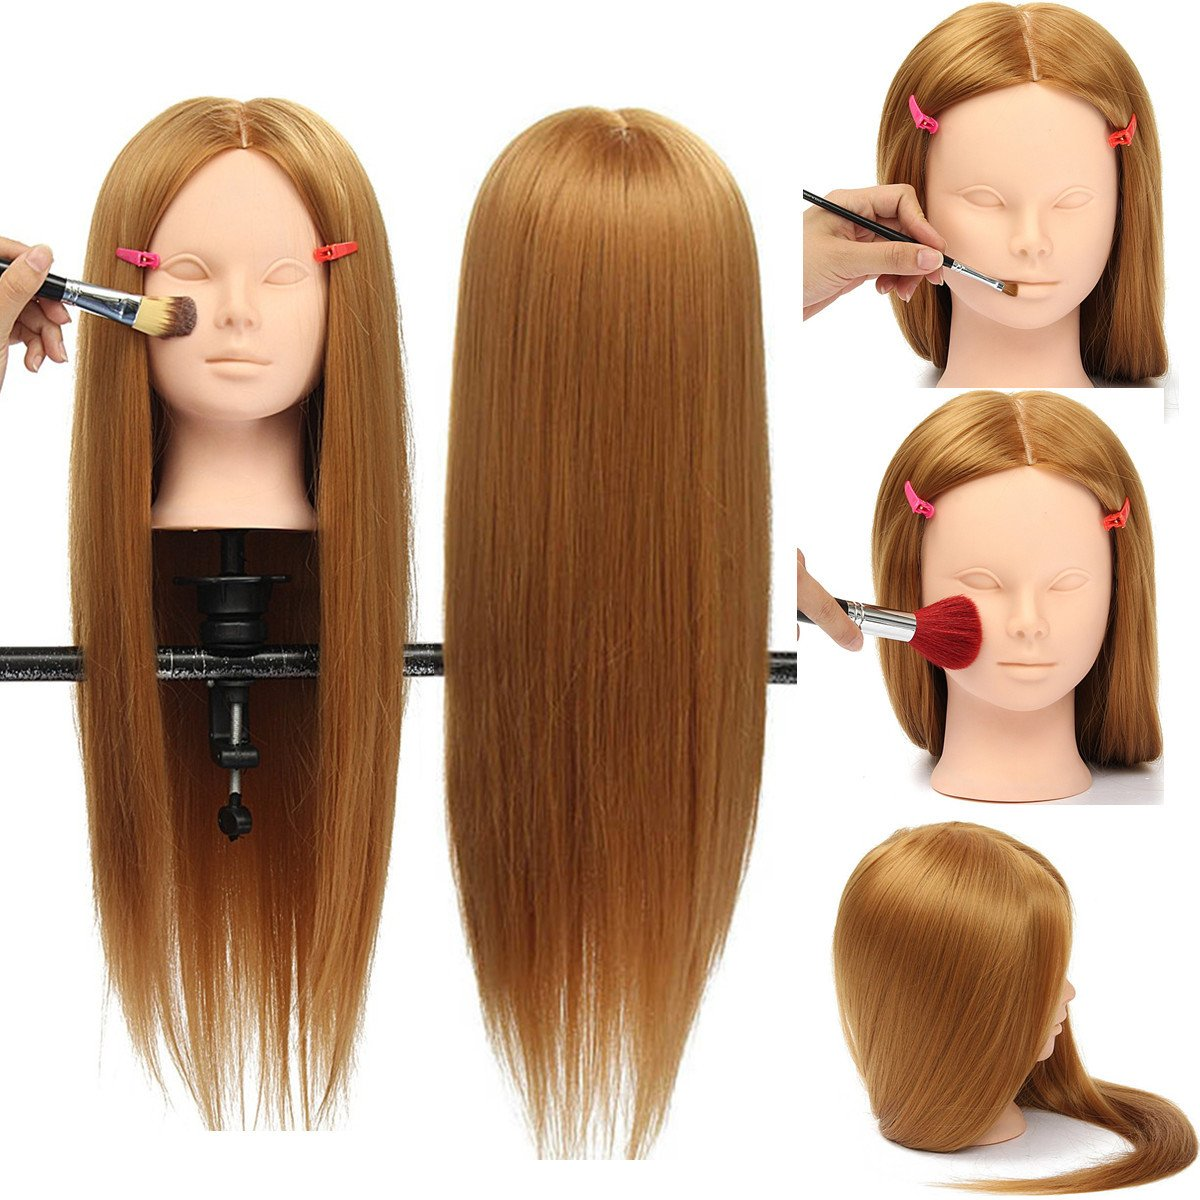 Health & Beauty - Hair Styling Tools - 26' Long Hair Training Mannequin Head Model Hairdressing Makeup Practice with Clamp Holder Isali